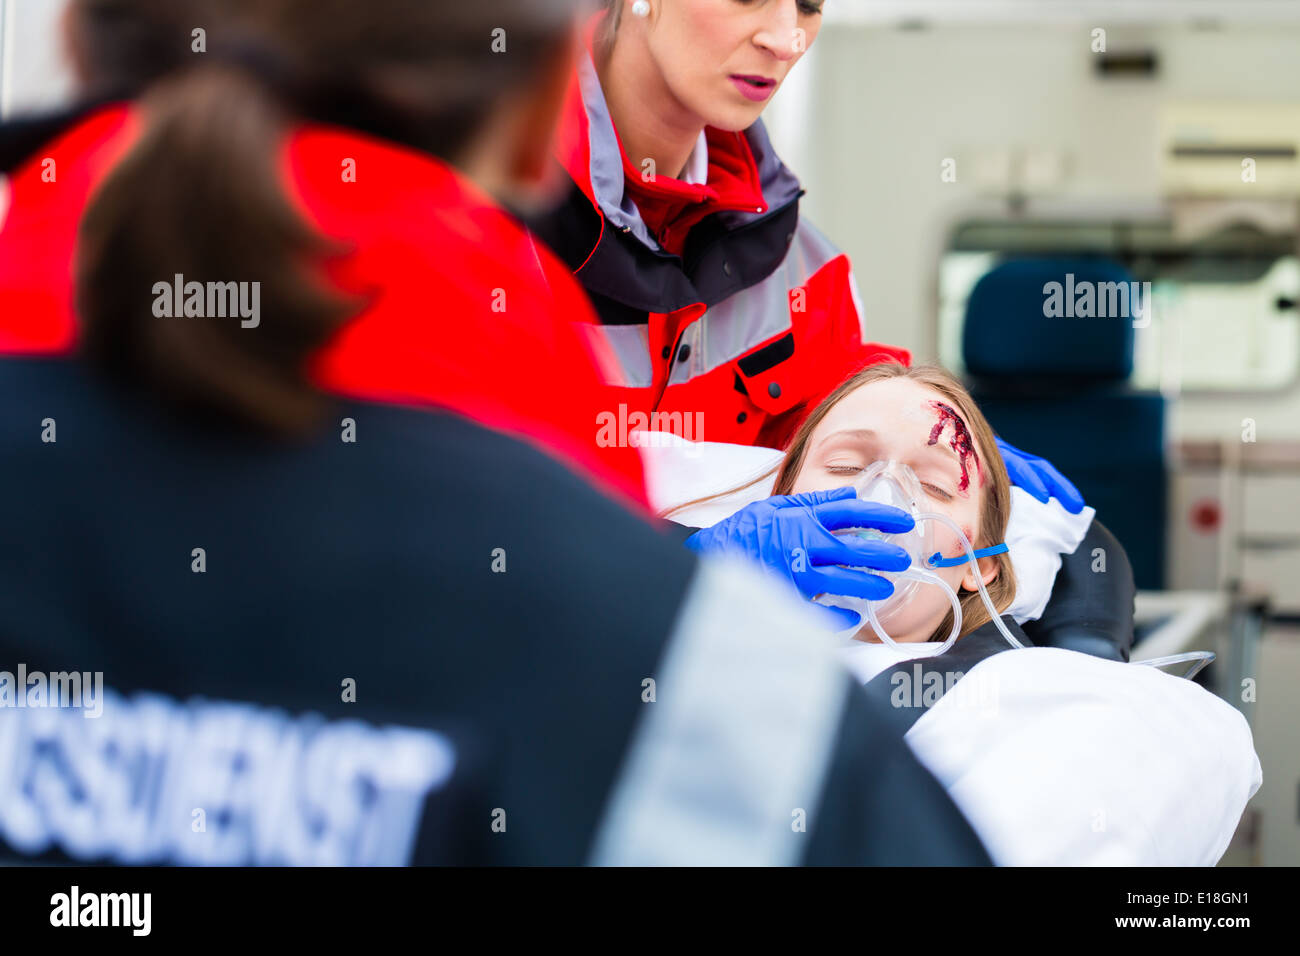 Emergency doctor and nurse or ambulance team transporting accident victim on stretcher Stock Photo